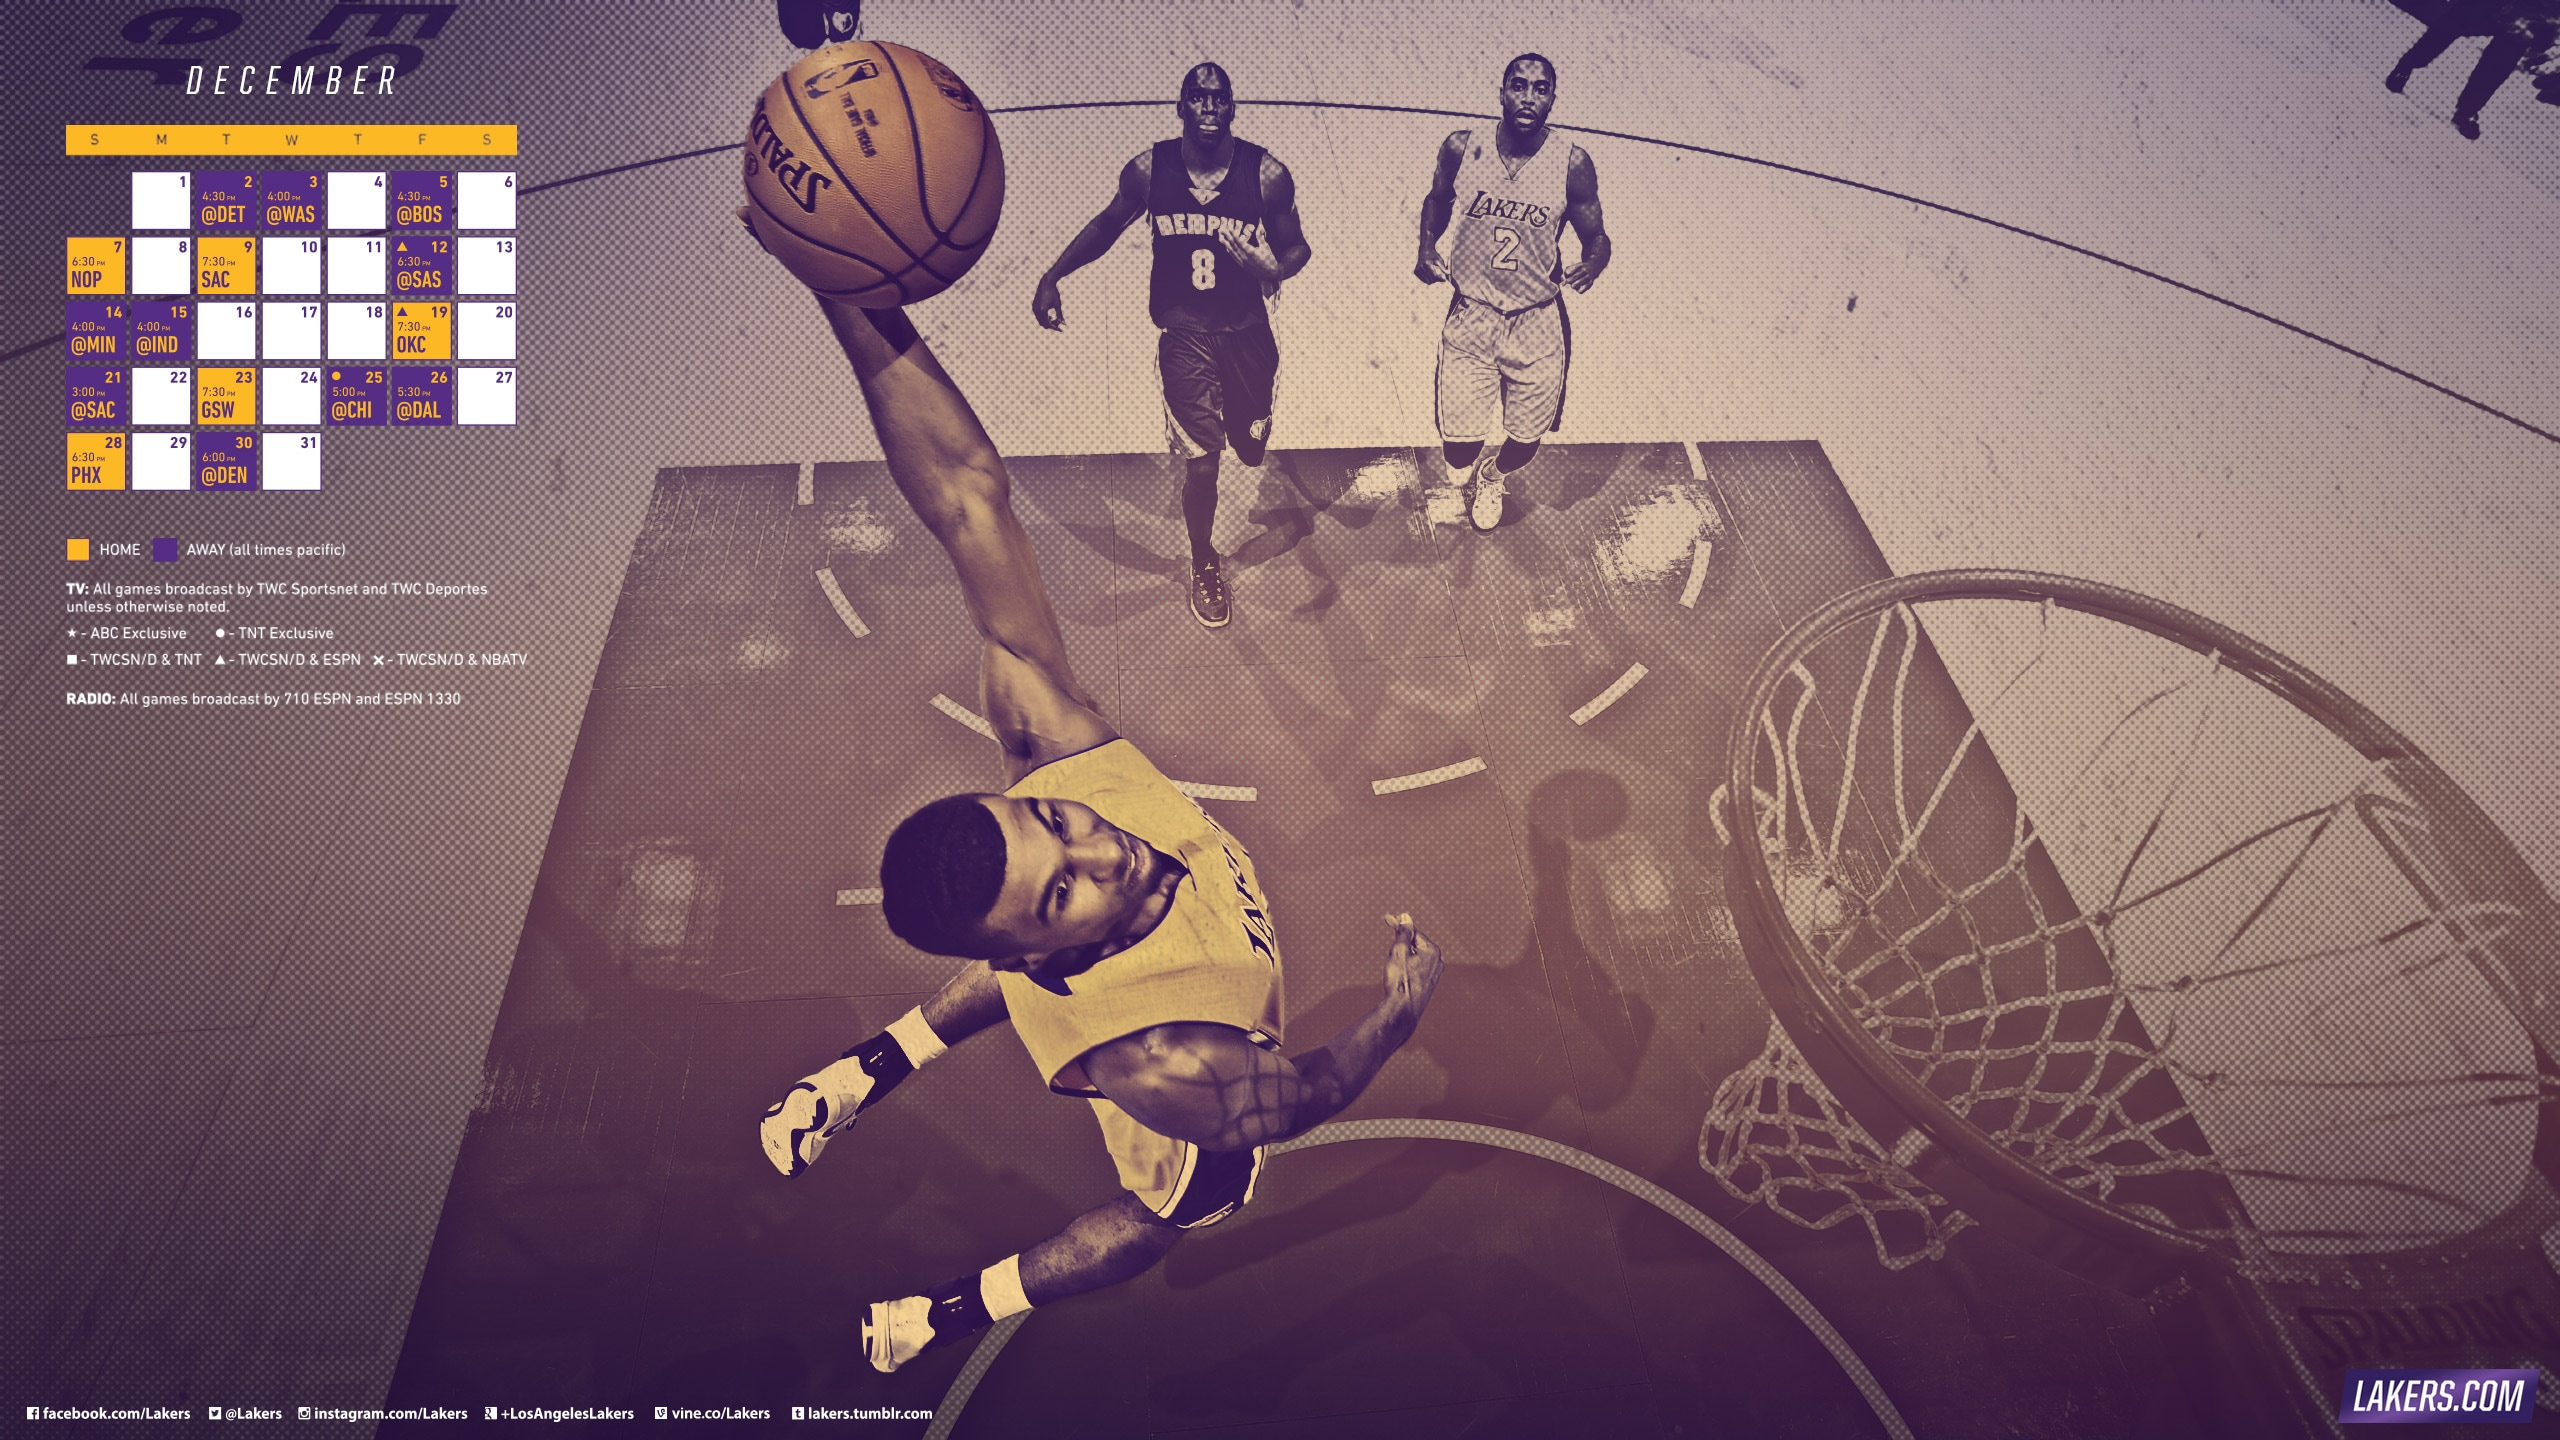 Lakers December Schedule Wallpapers